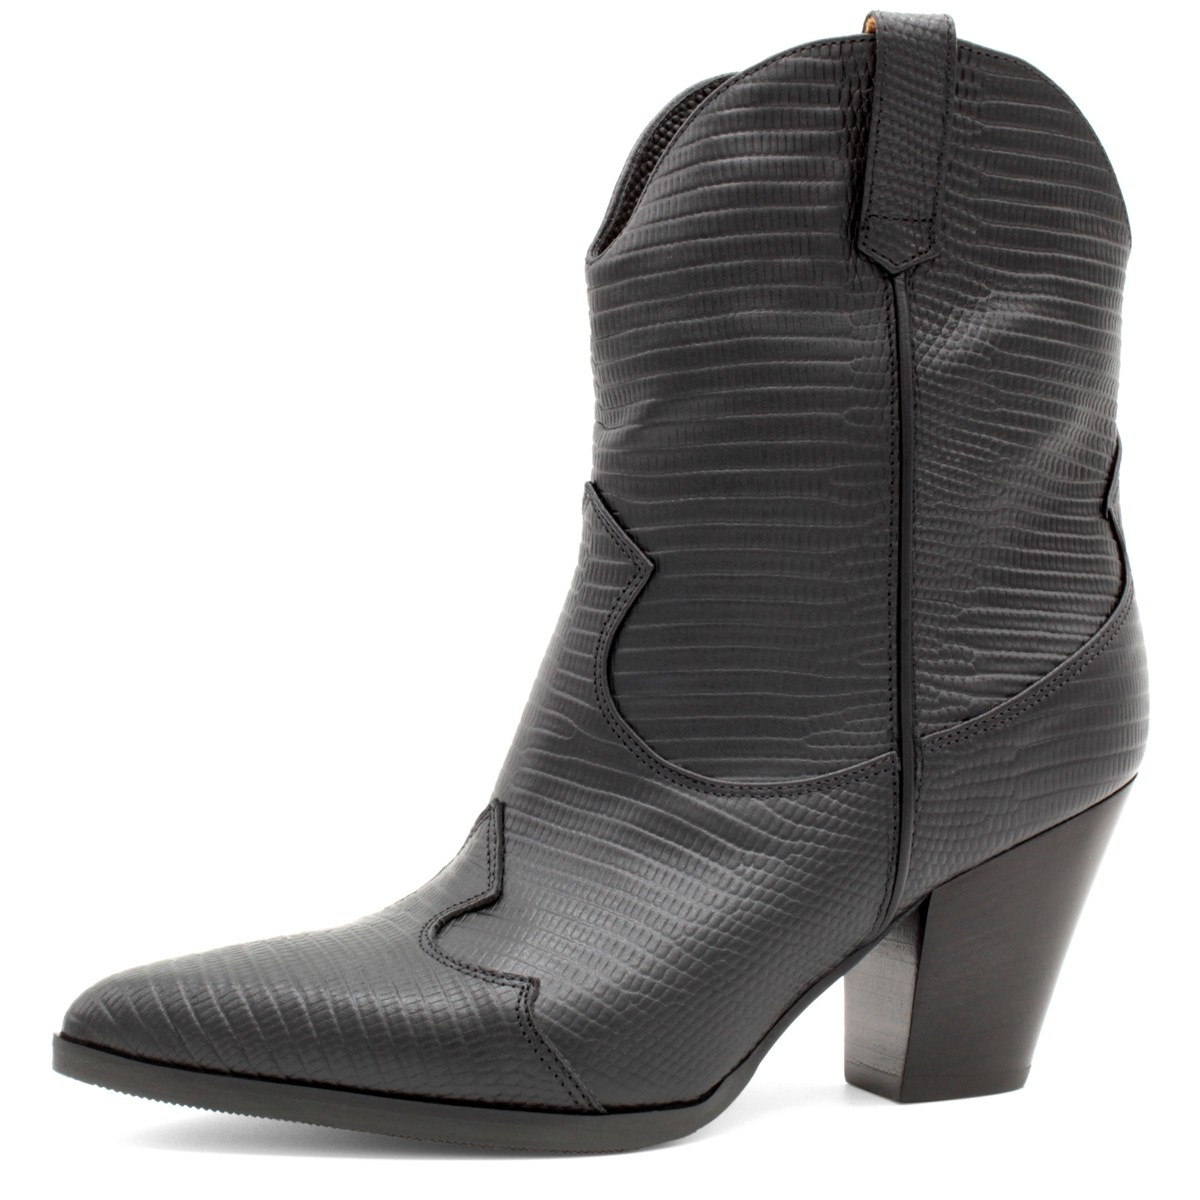 BLACK TEJUS COWBOY-STYLE ANKLE BOOTS